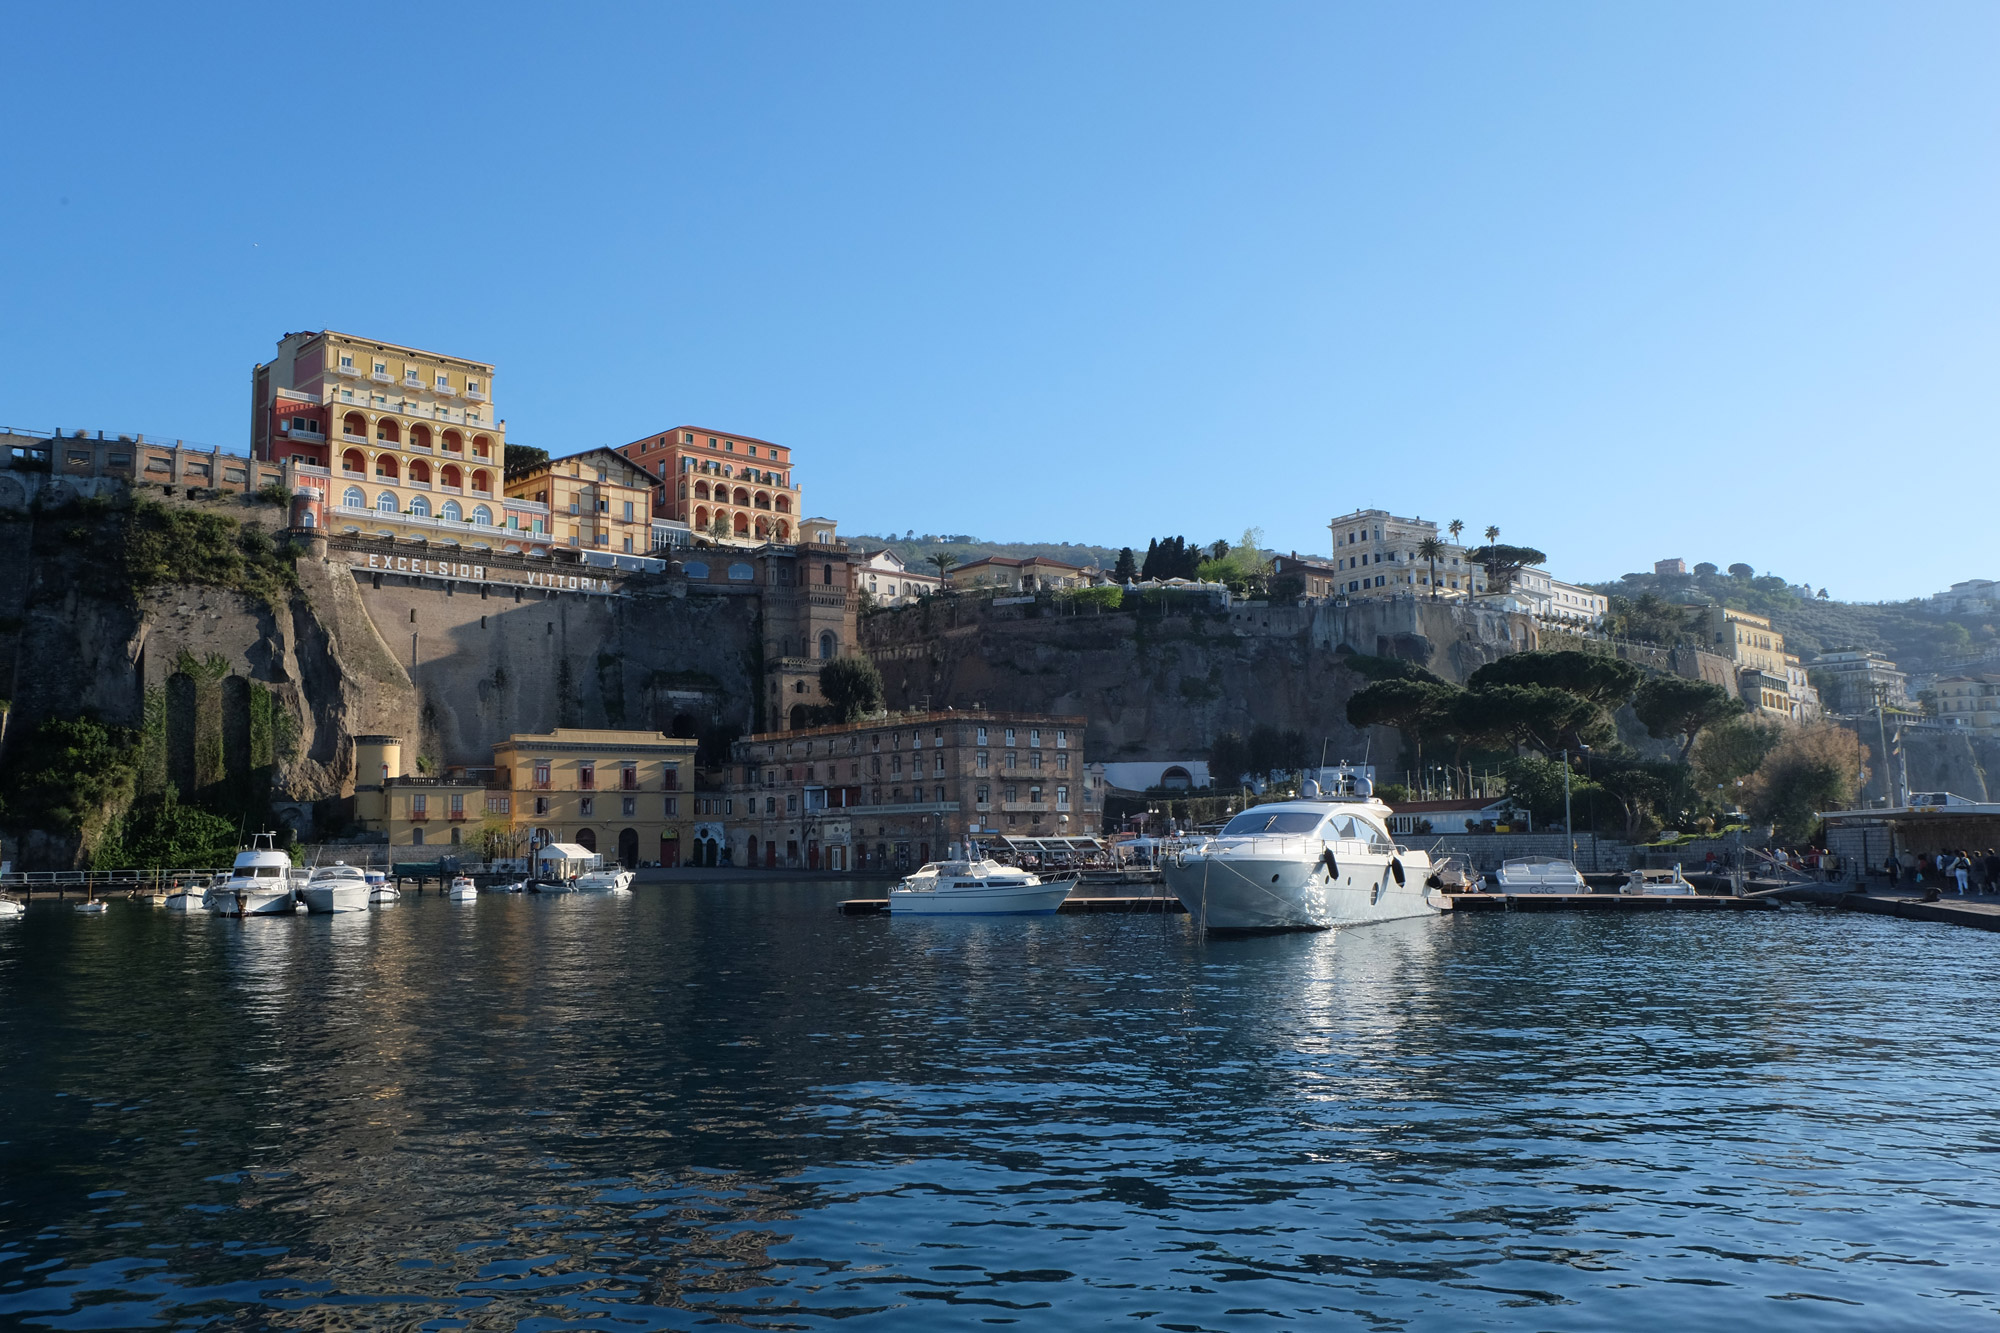 The harbour in Sorrento looking pretty in the late afternoon sun